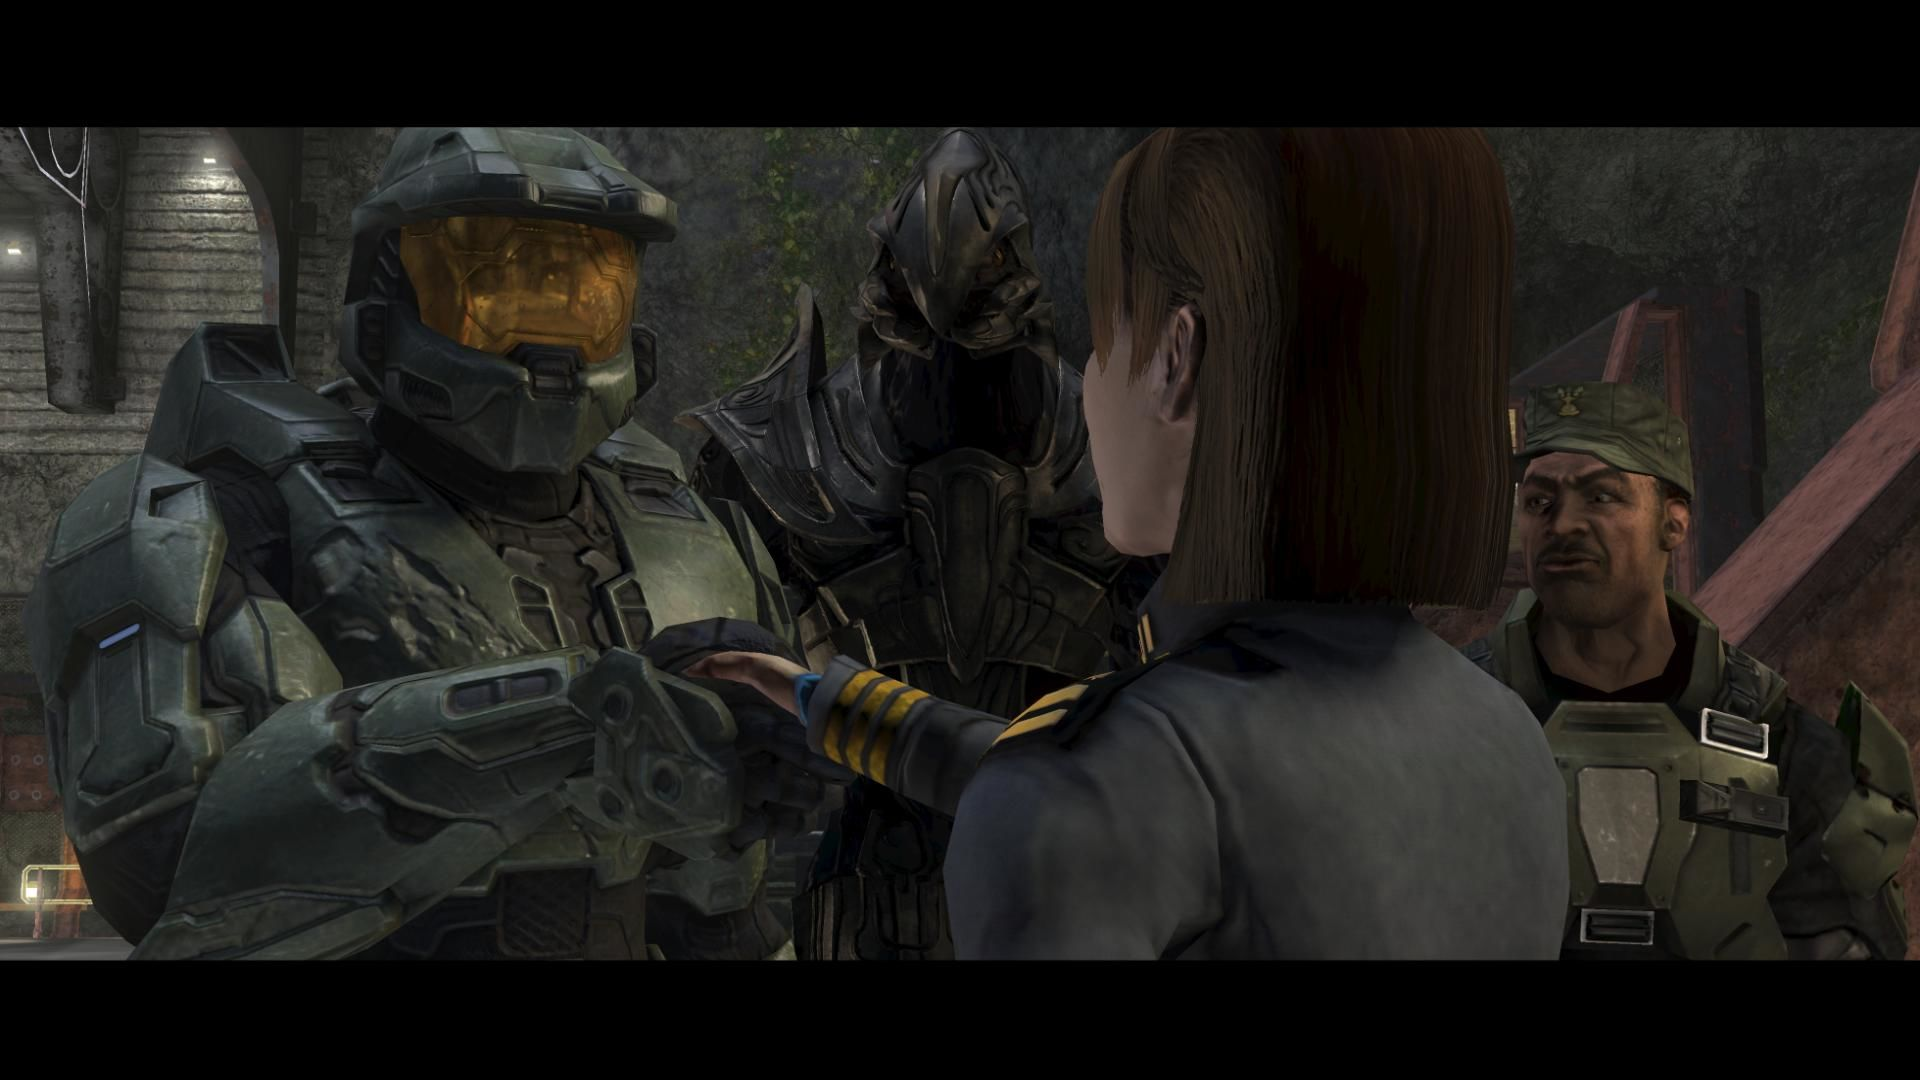 Halo 3 Xbox 360 Cast shot from a cutscene in campaign. From left to right: Master Chief Spartan 117, the Arbiter, Commander Miranda Keyes and Sergeant Alvin Johnson.